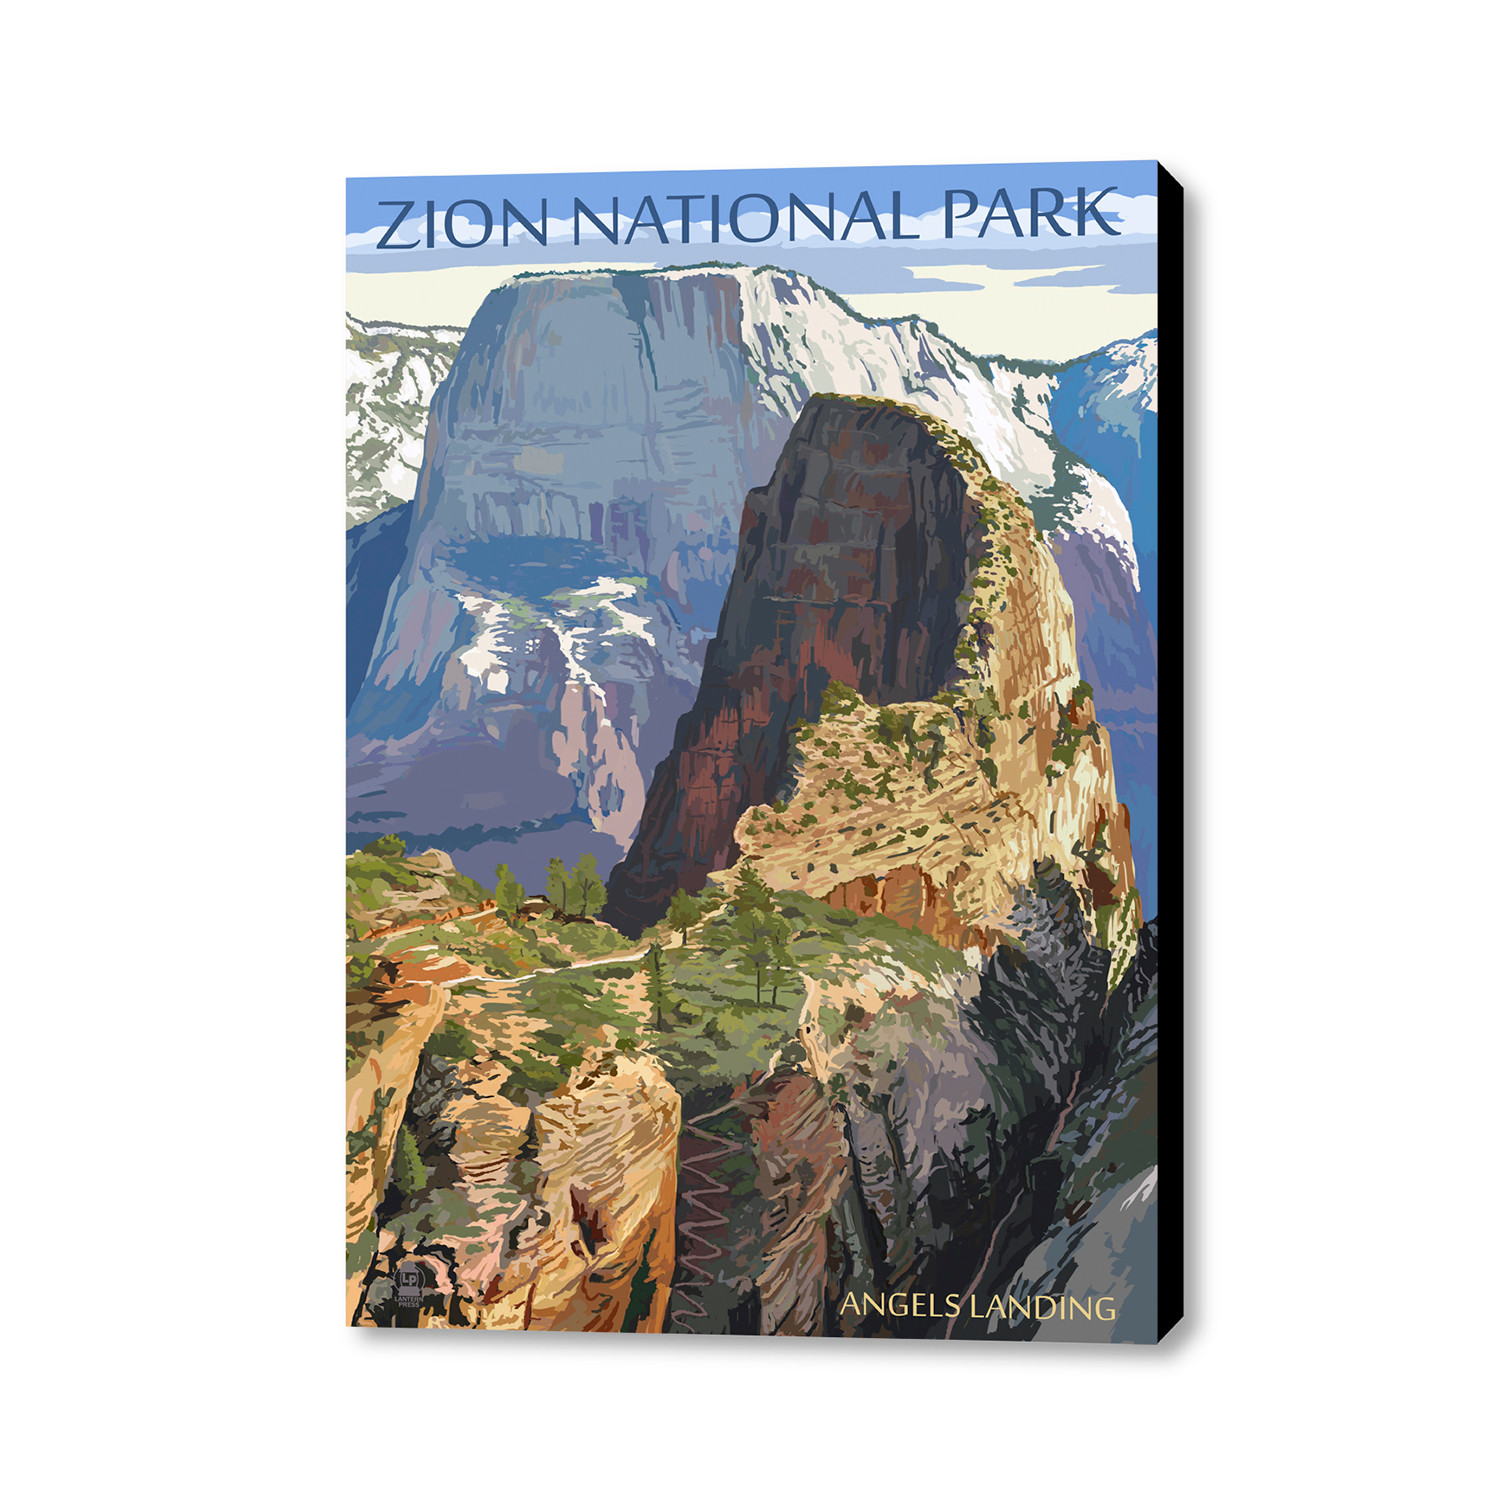 Places To Live Near Zion National Park: Zion National Park // Angels Landing